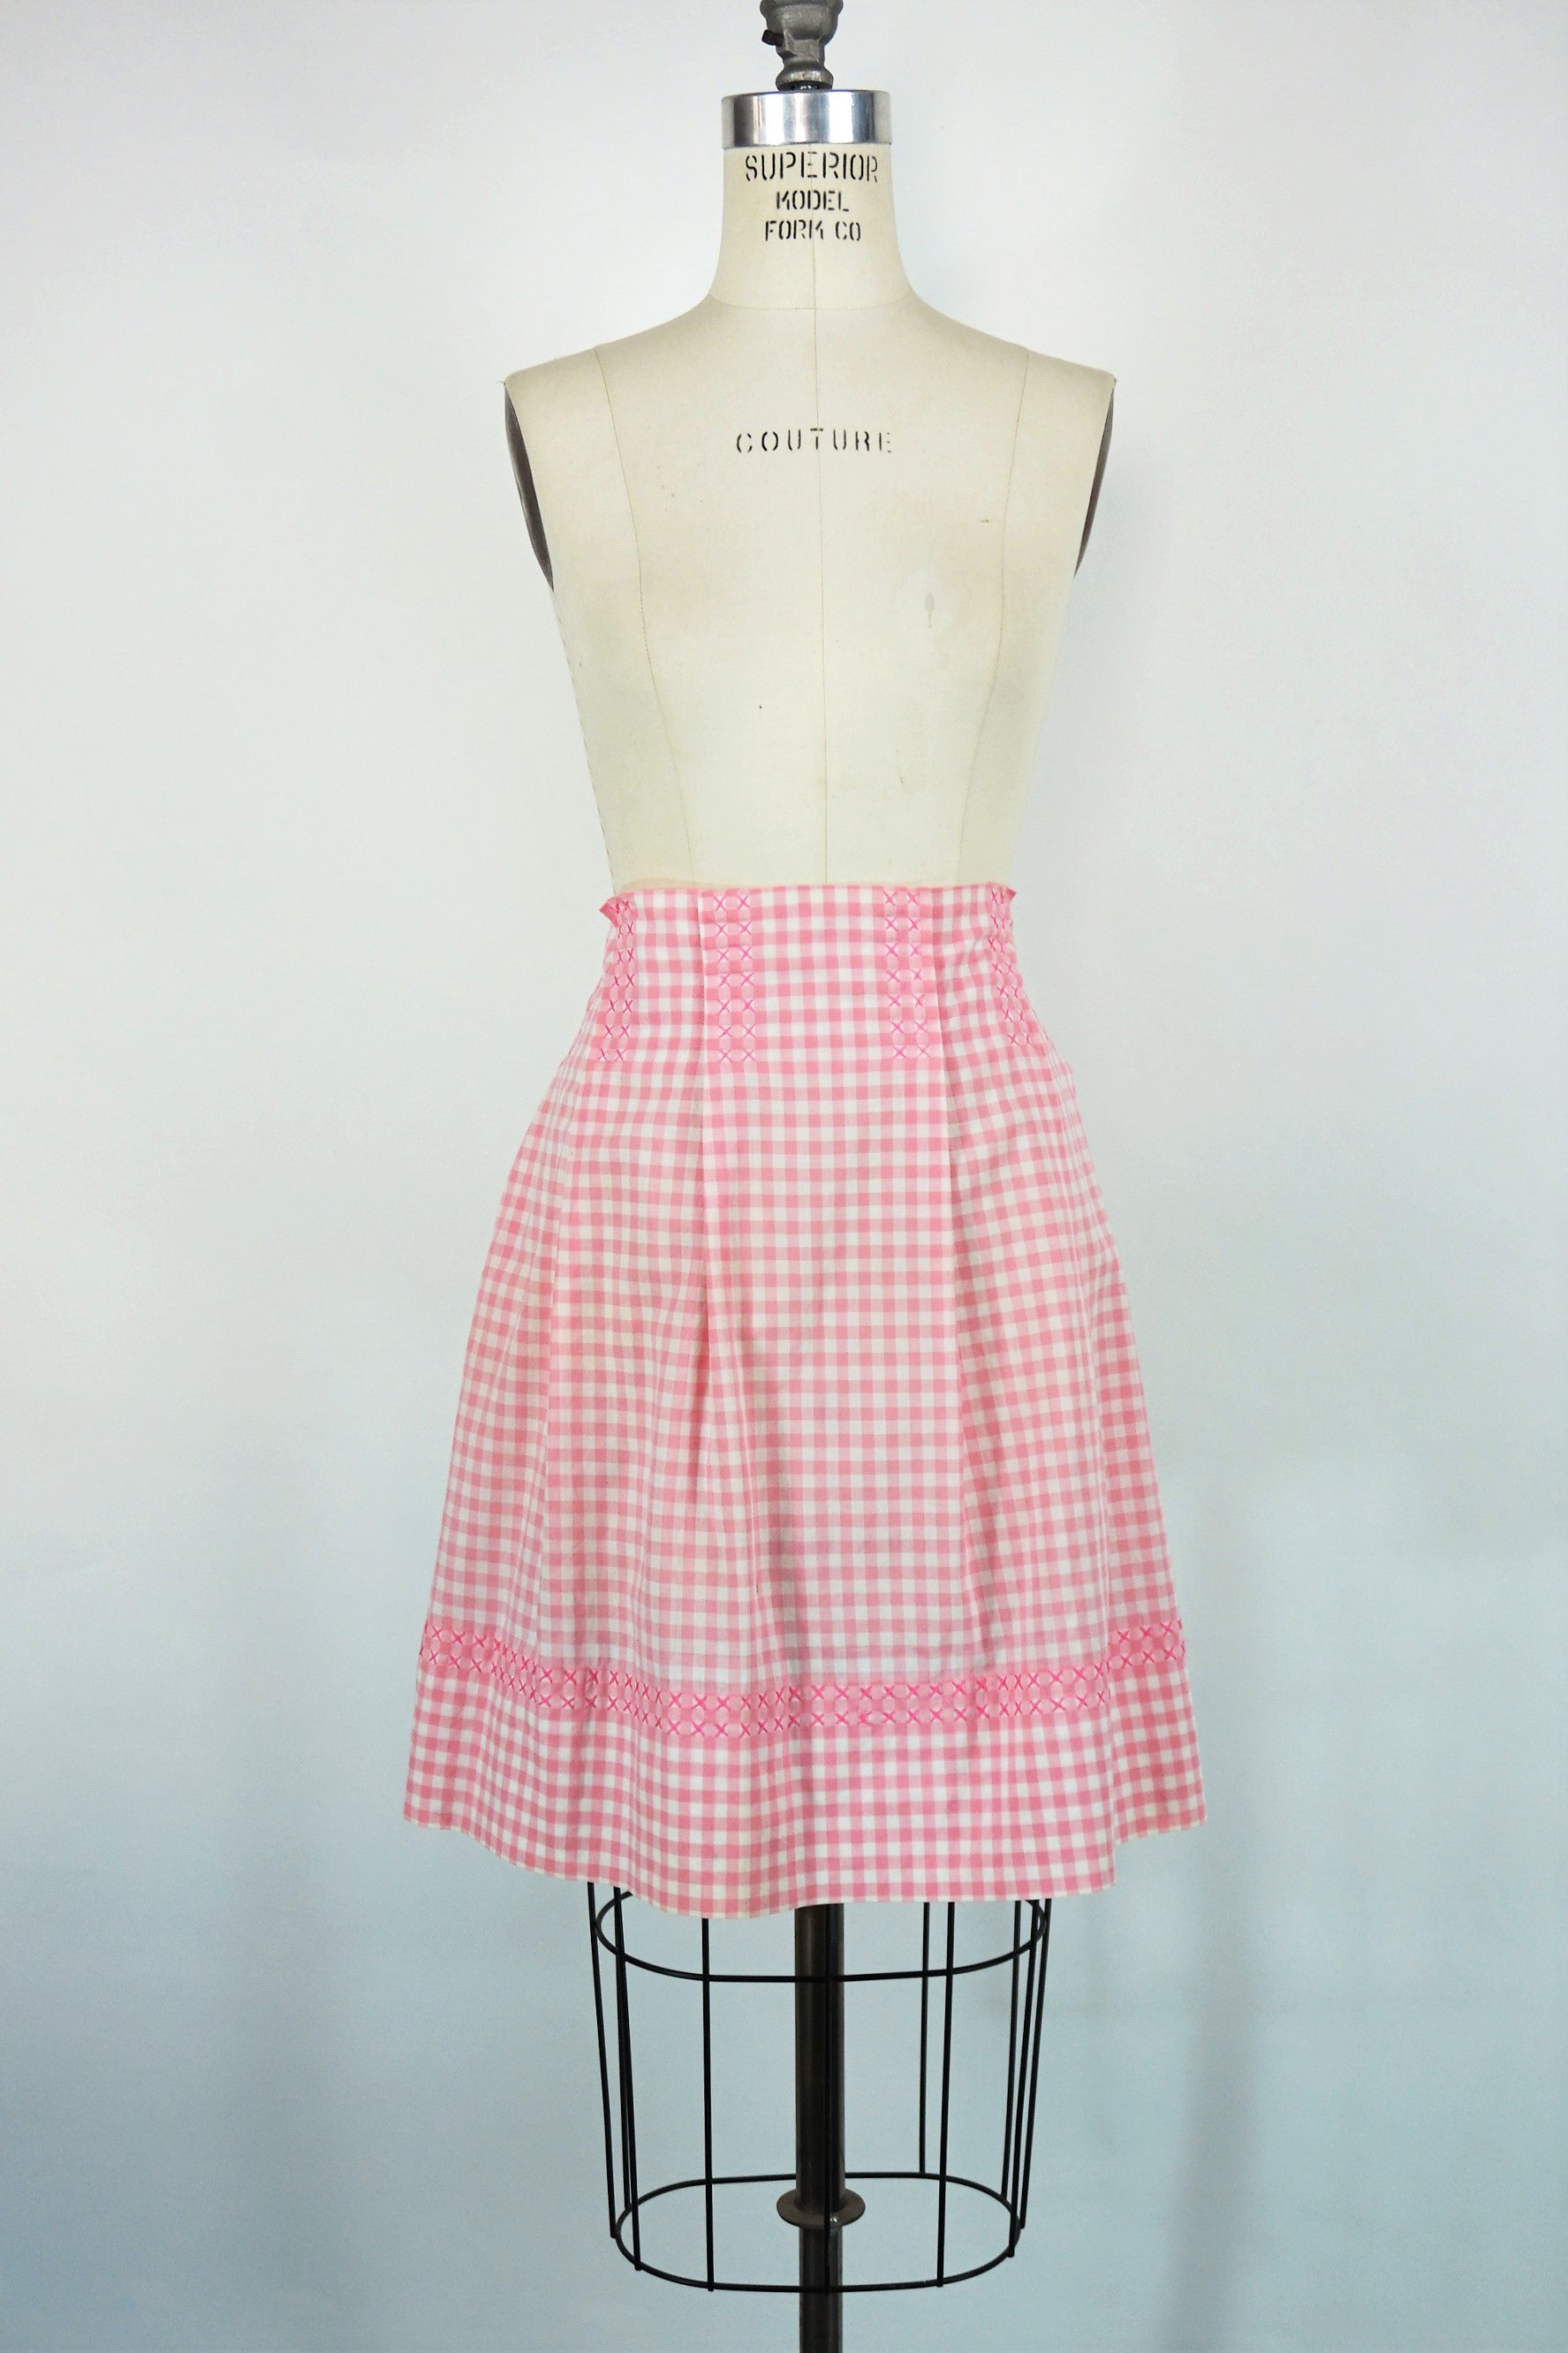 White vintage apron with girl silhouette on pocket